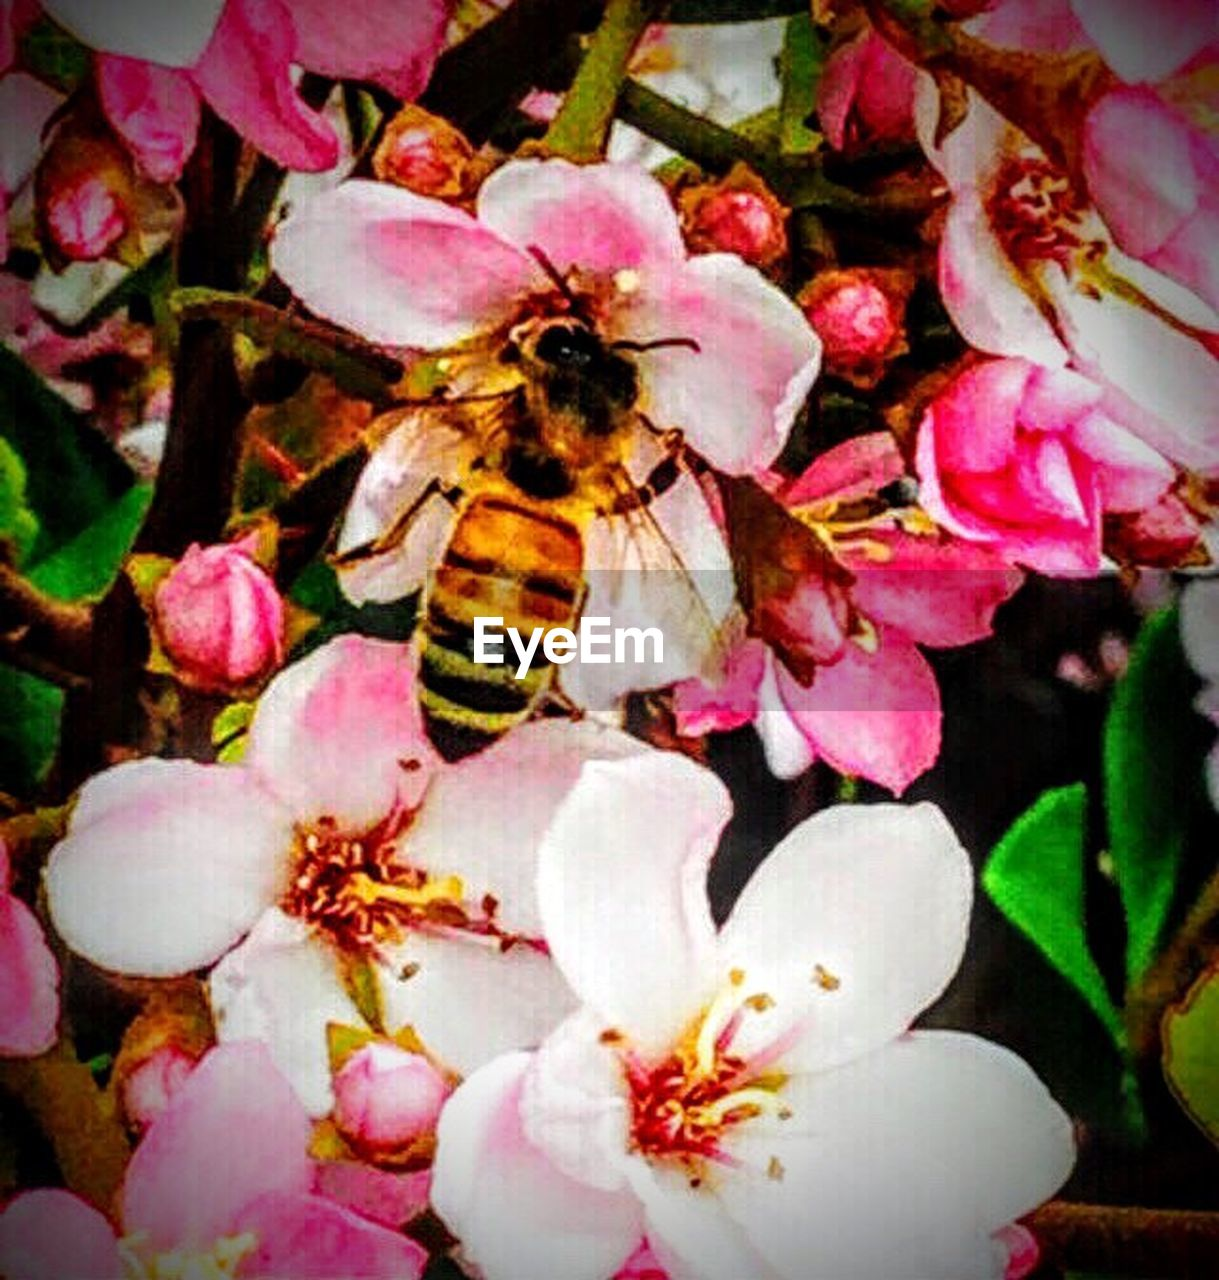 flower, insect, one animal, bee, animals in the wild, animal themes, petal, pink color, no people, growth, nature, fragility, outdoors, honey bee, beauty in nature, day, freshness, pollination, flower head, animal wildlife, plant, close-up, springtime, bumblebee, buzzing